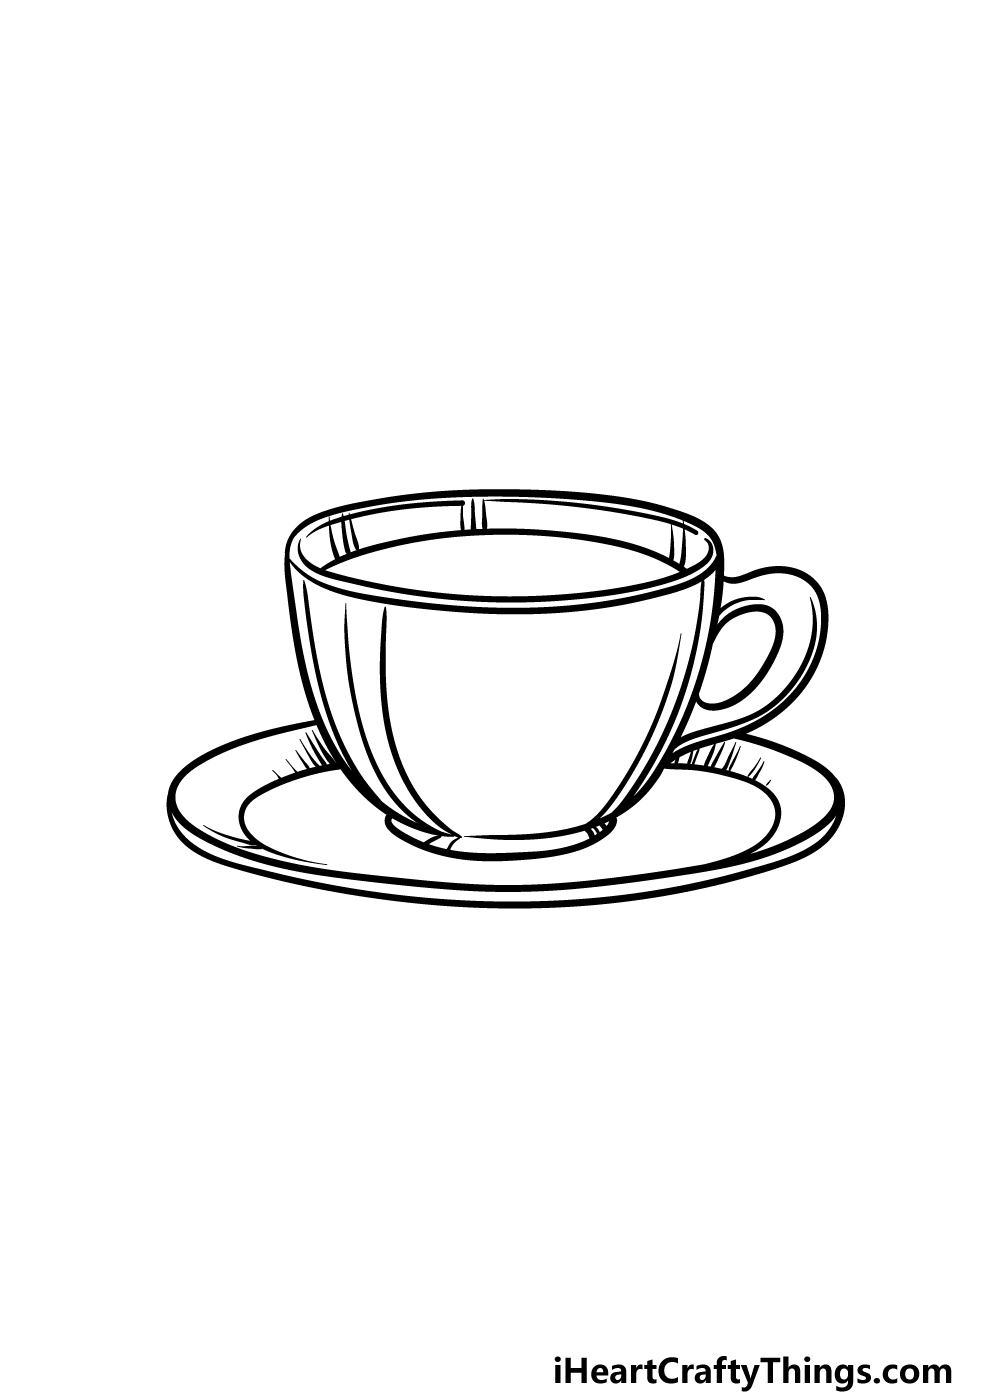 drawing a tea cup step 5